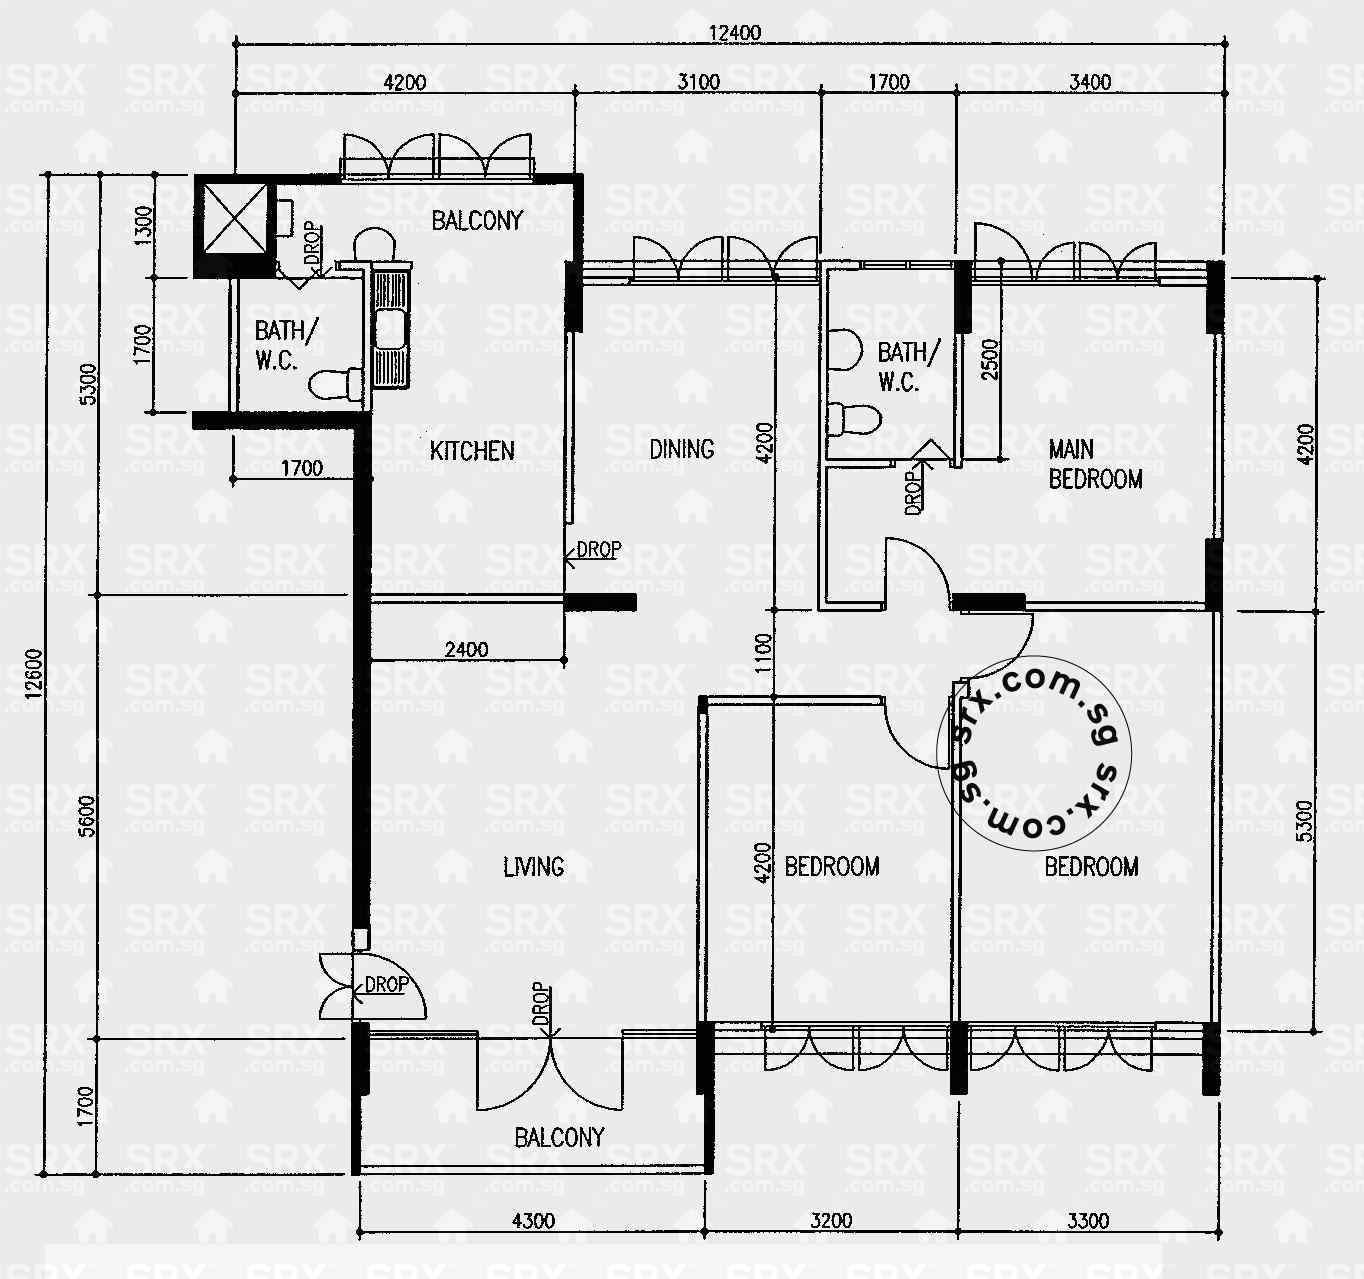 Floor Plans For Anchorvale Link Hdb Details Srx Property - purchase ...